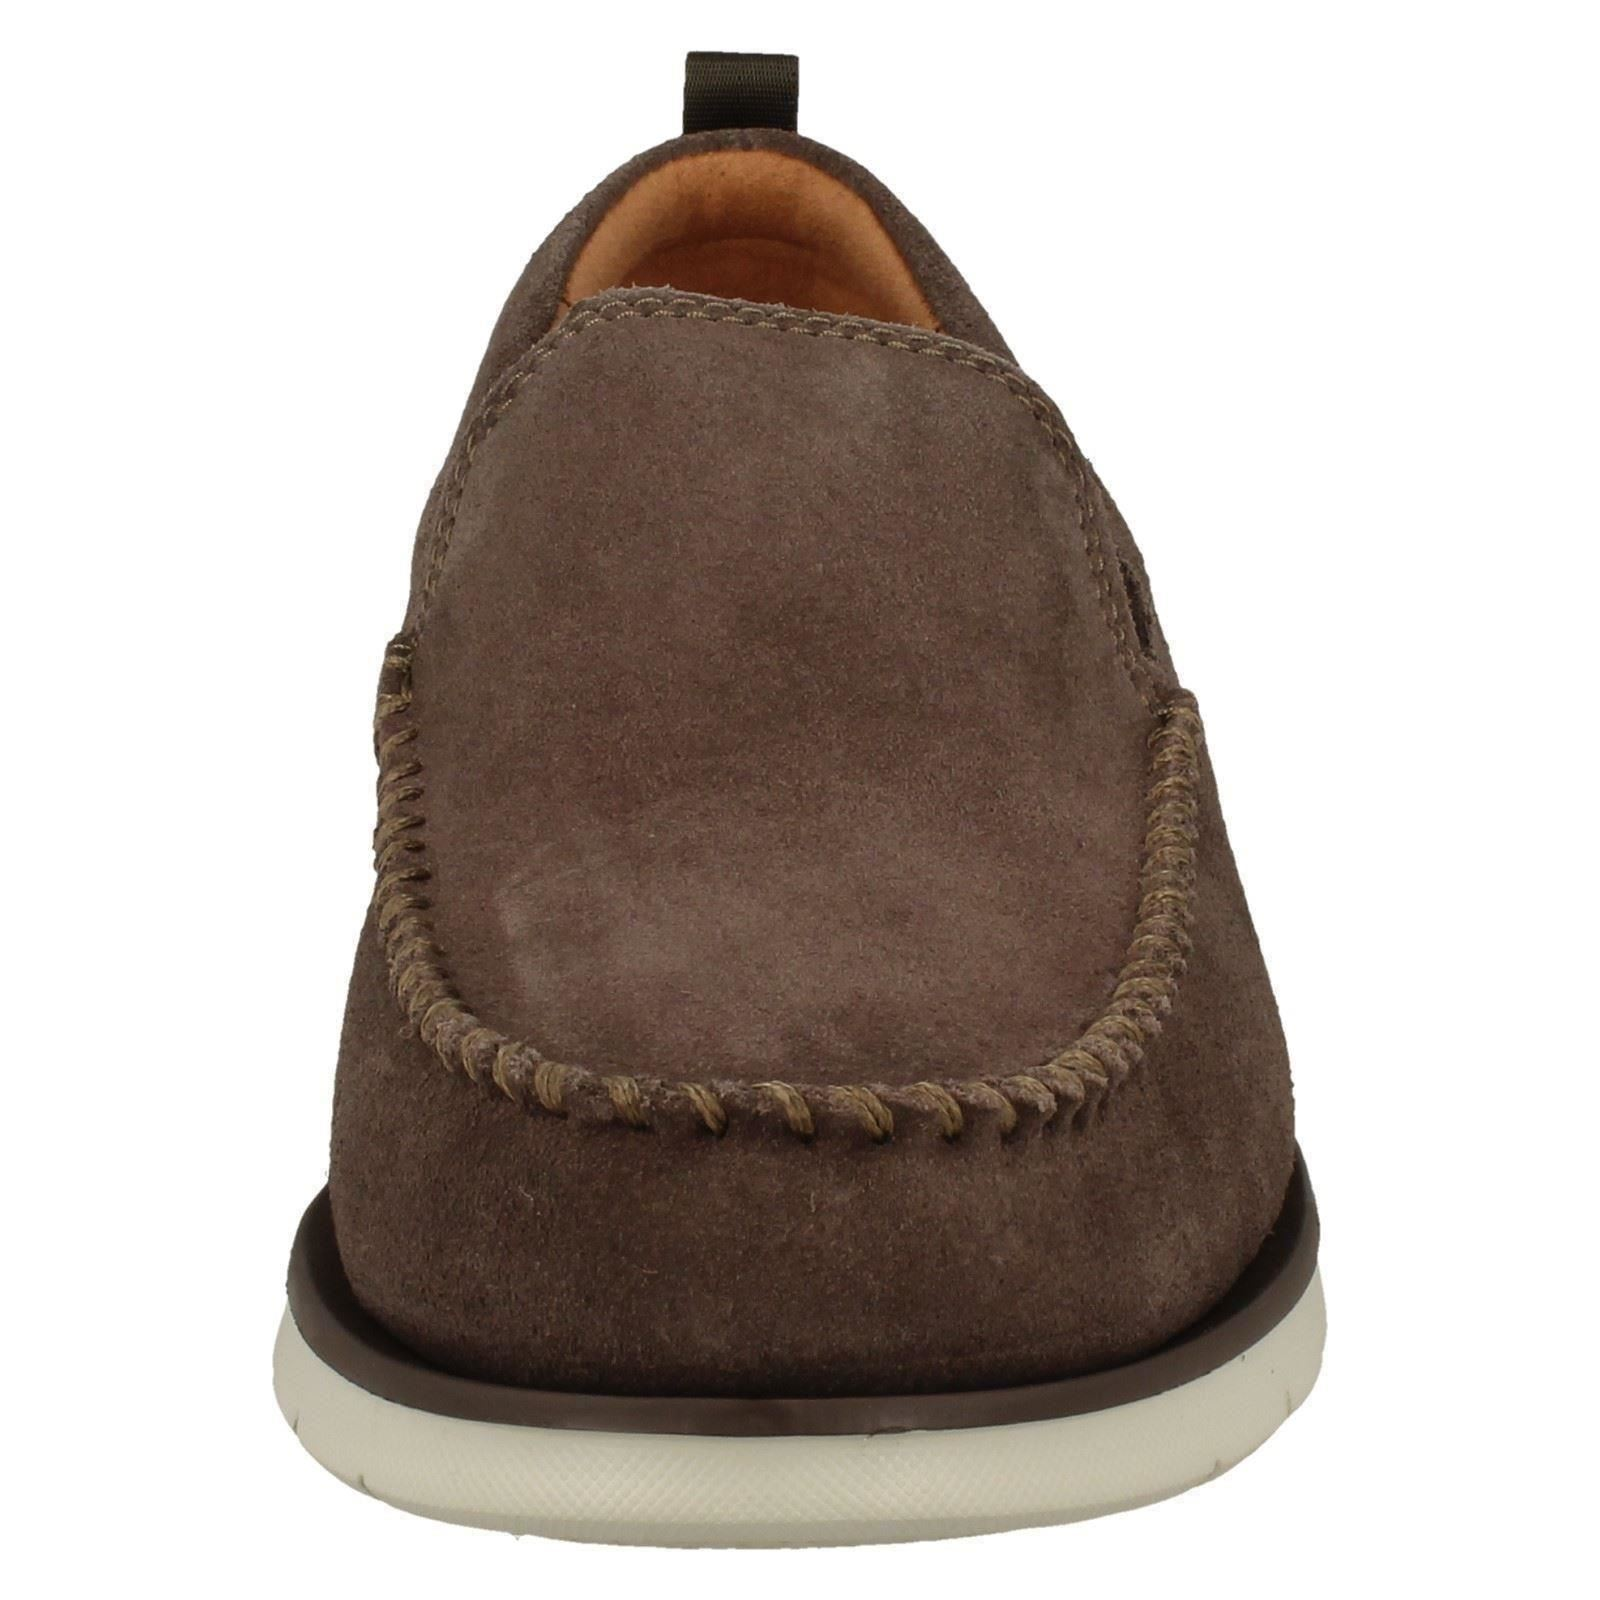 Mens Clarks Stylish Stylish Stylish Slip-On Shoes Edgewood Step 887284